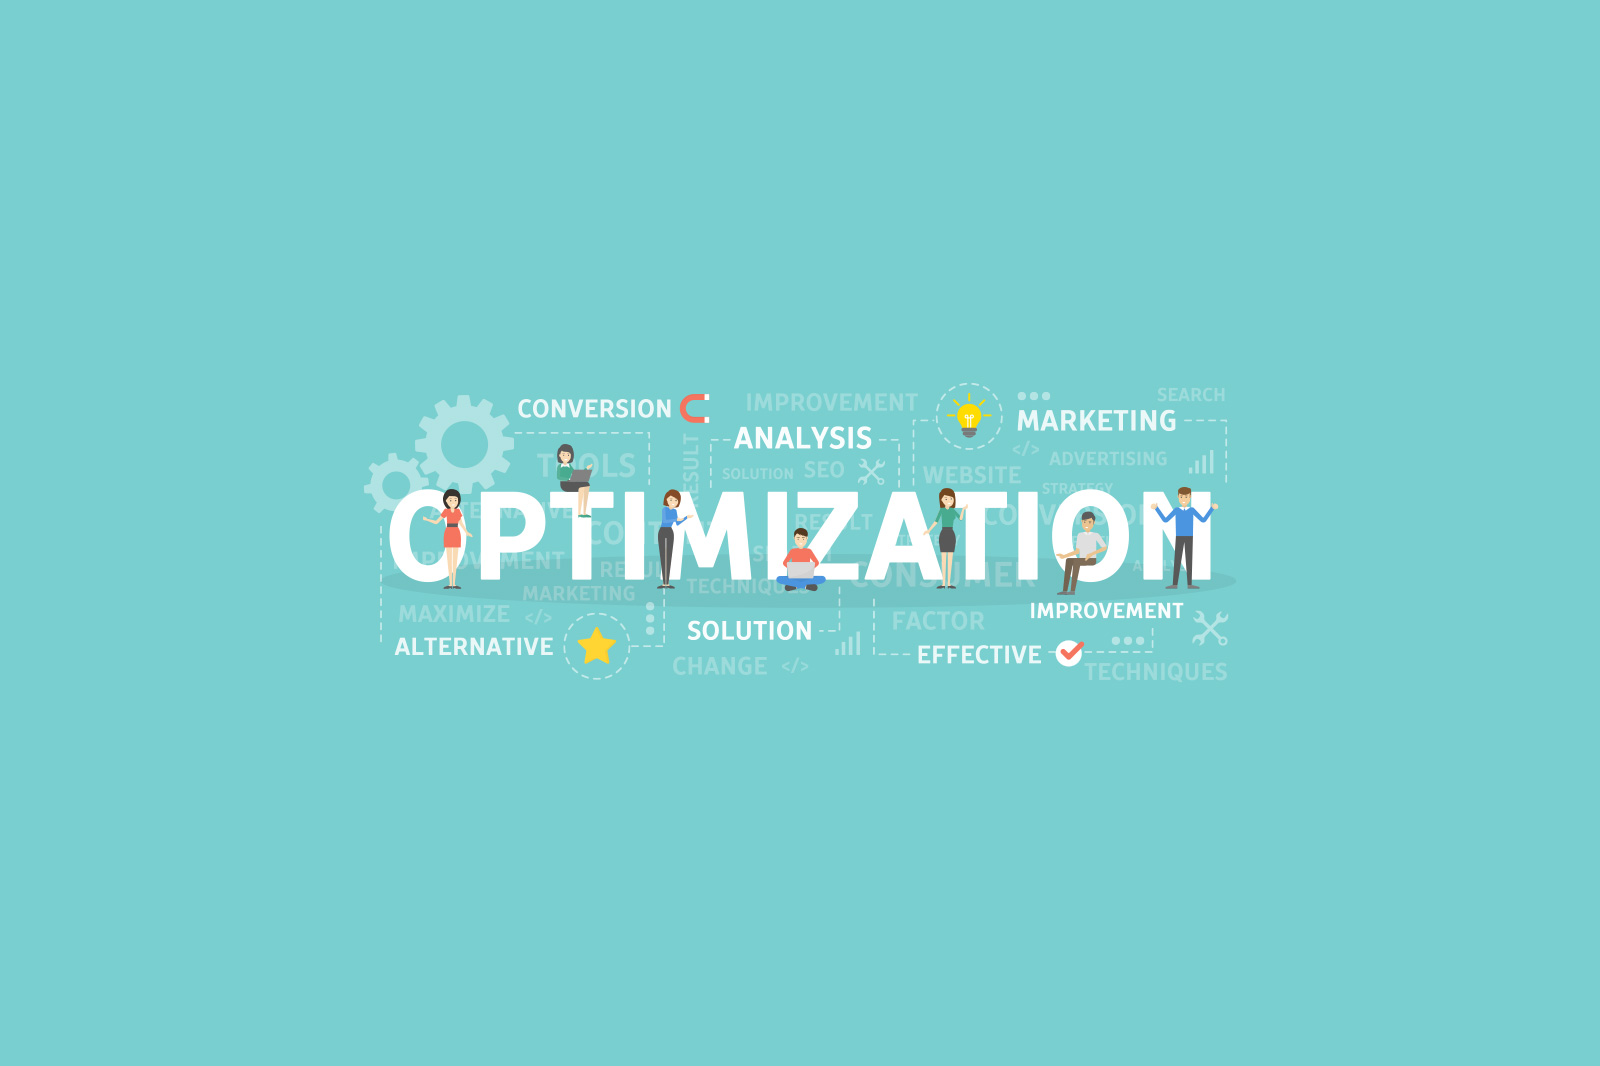 Common Mistakes with Optimization